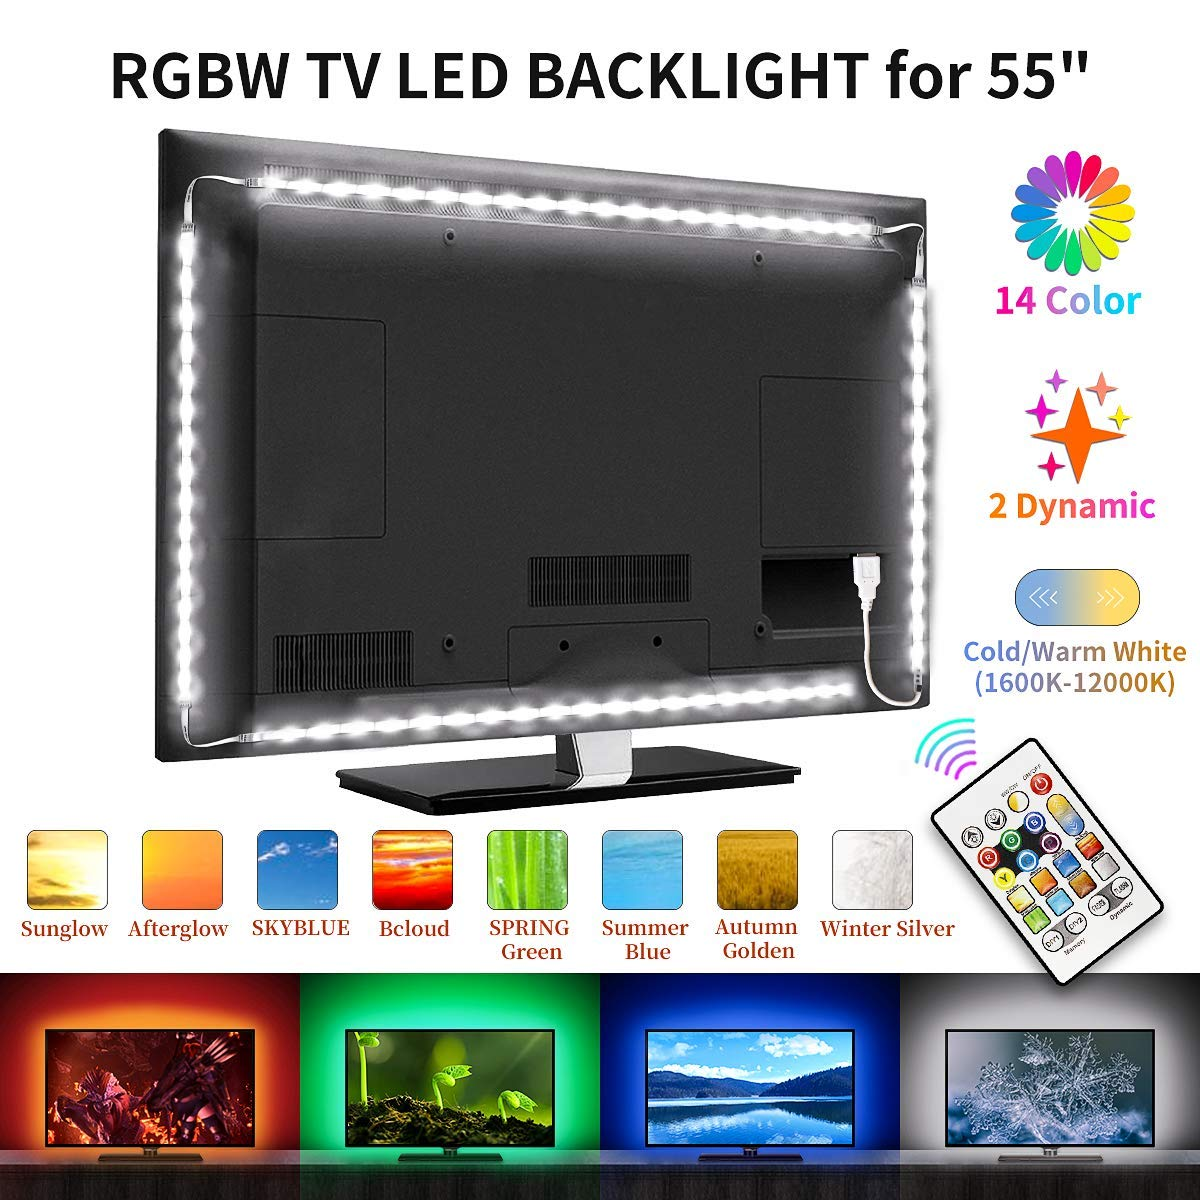 Bason TV LED Backlight, RGBW TV Light Strip for 55'' TV, RGB Upgrade 11.29ft TV Lights, USB TV Bias Lighting with Remote, Color Changing Lights for Entertainment Center Room Decor, Home Movie Theater.